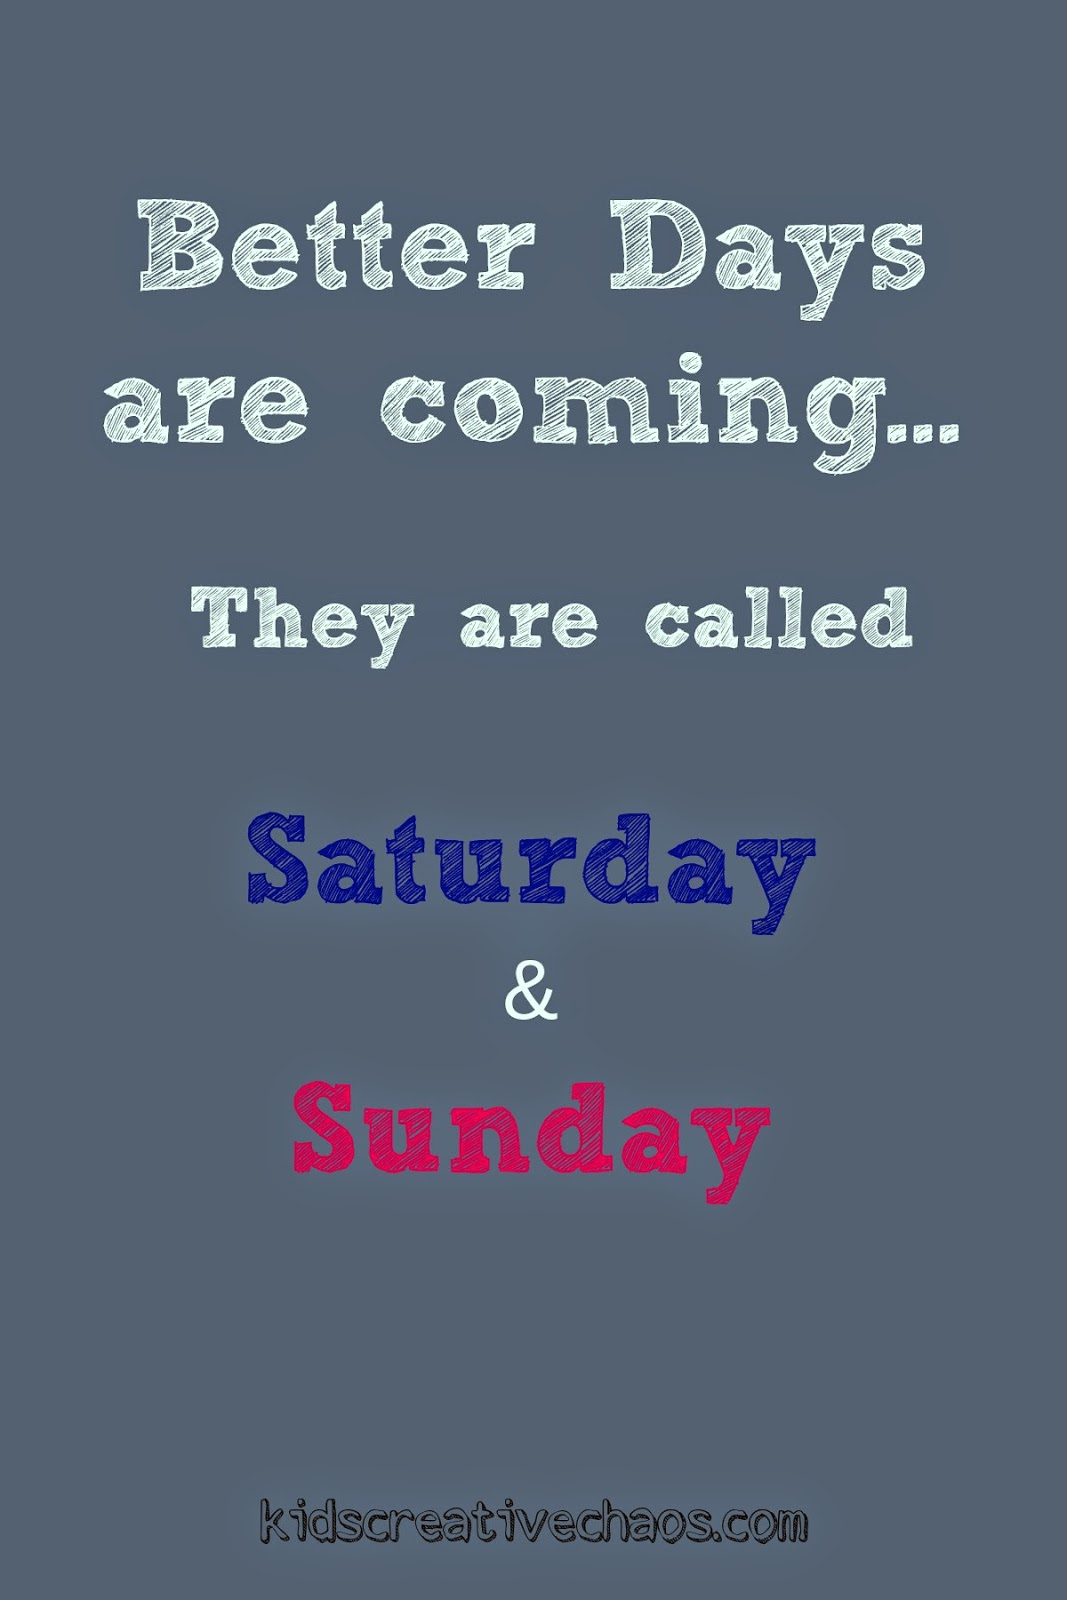 Saturday Quotes Weekend Quotes Better Days Are Coming  Kids Creative Chaos